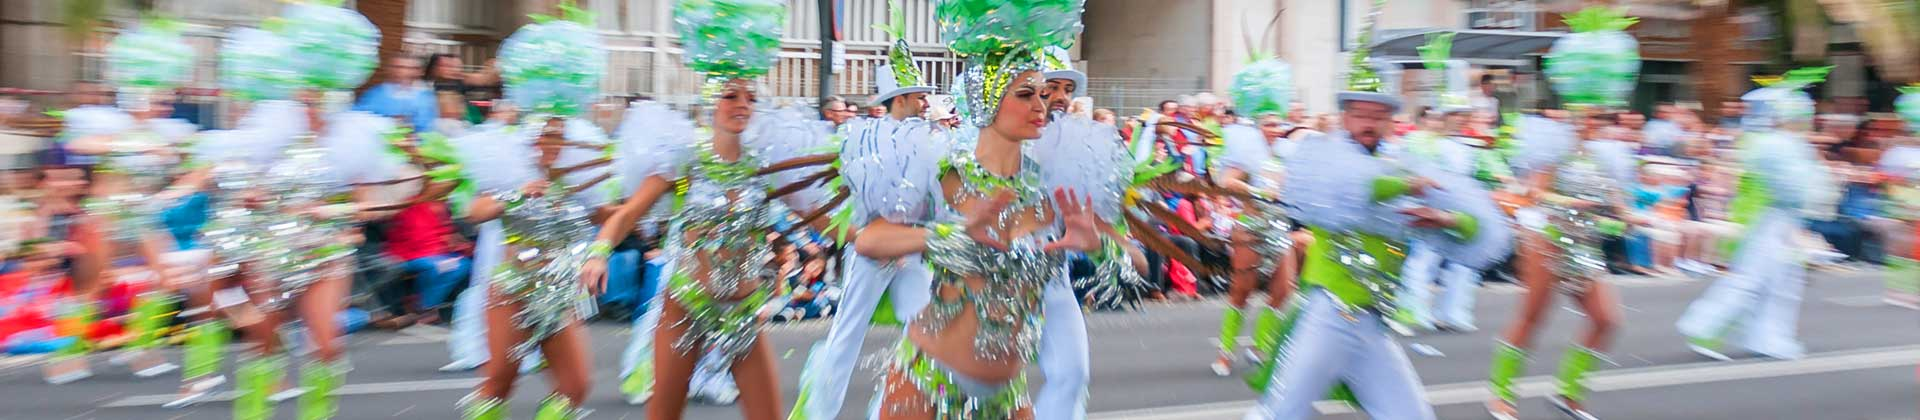 https://www.goodmorningtenerife.com/wp-content/uploads/2014/08/01_slide_carnival_GM_Tenerife.jpg